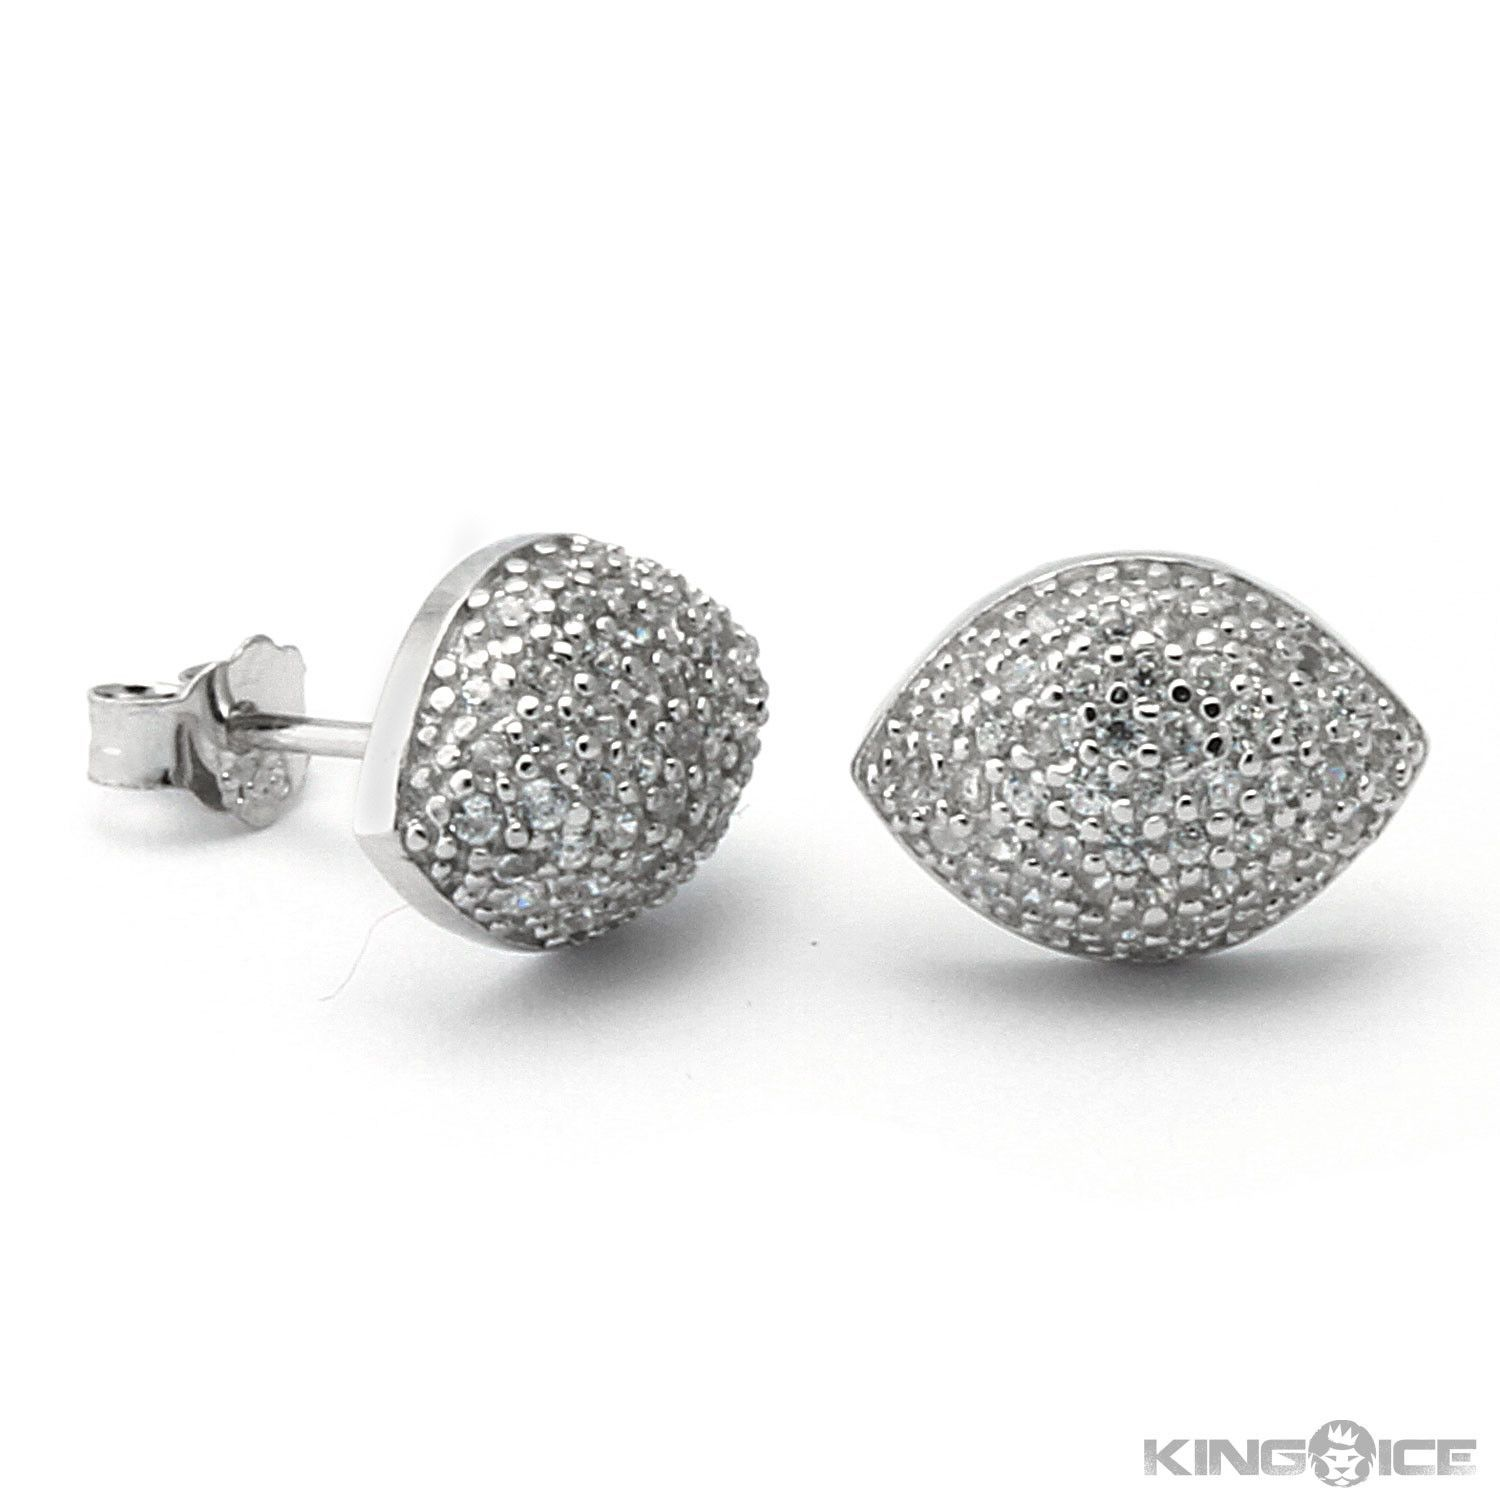 King Ice 925 Silver Oval Dome Iced Out Earrings